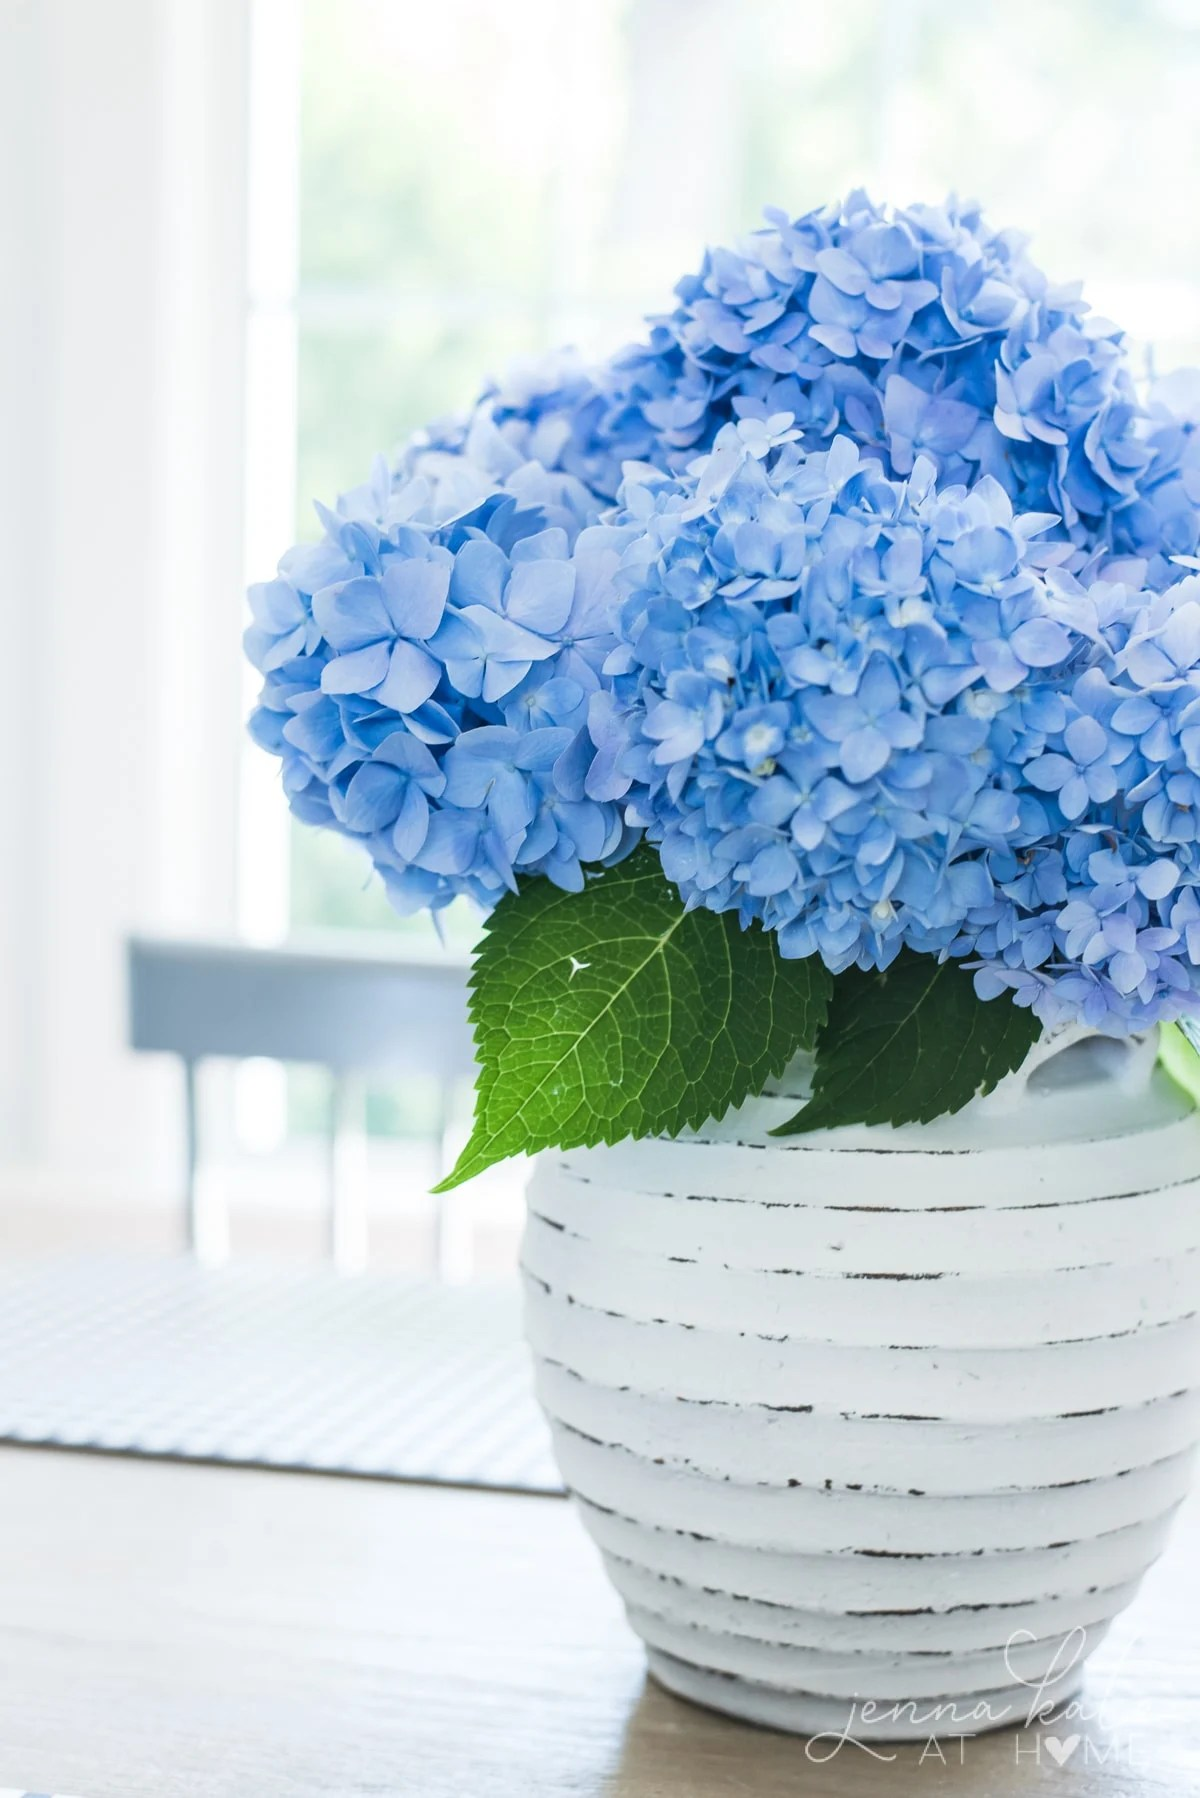 Vase filled with hydrangeas that last for up to 3 weeks